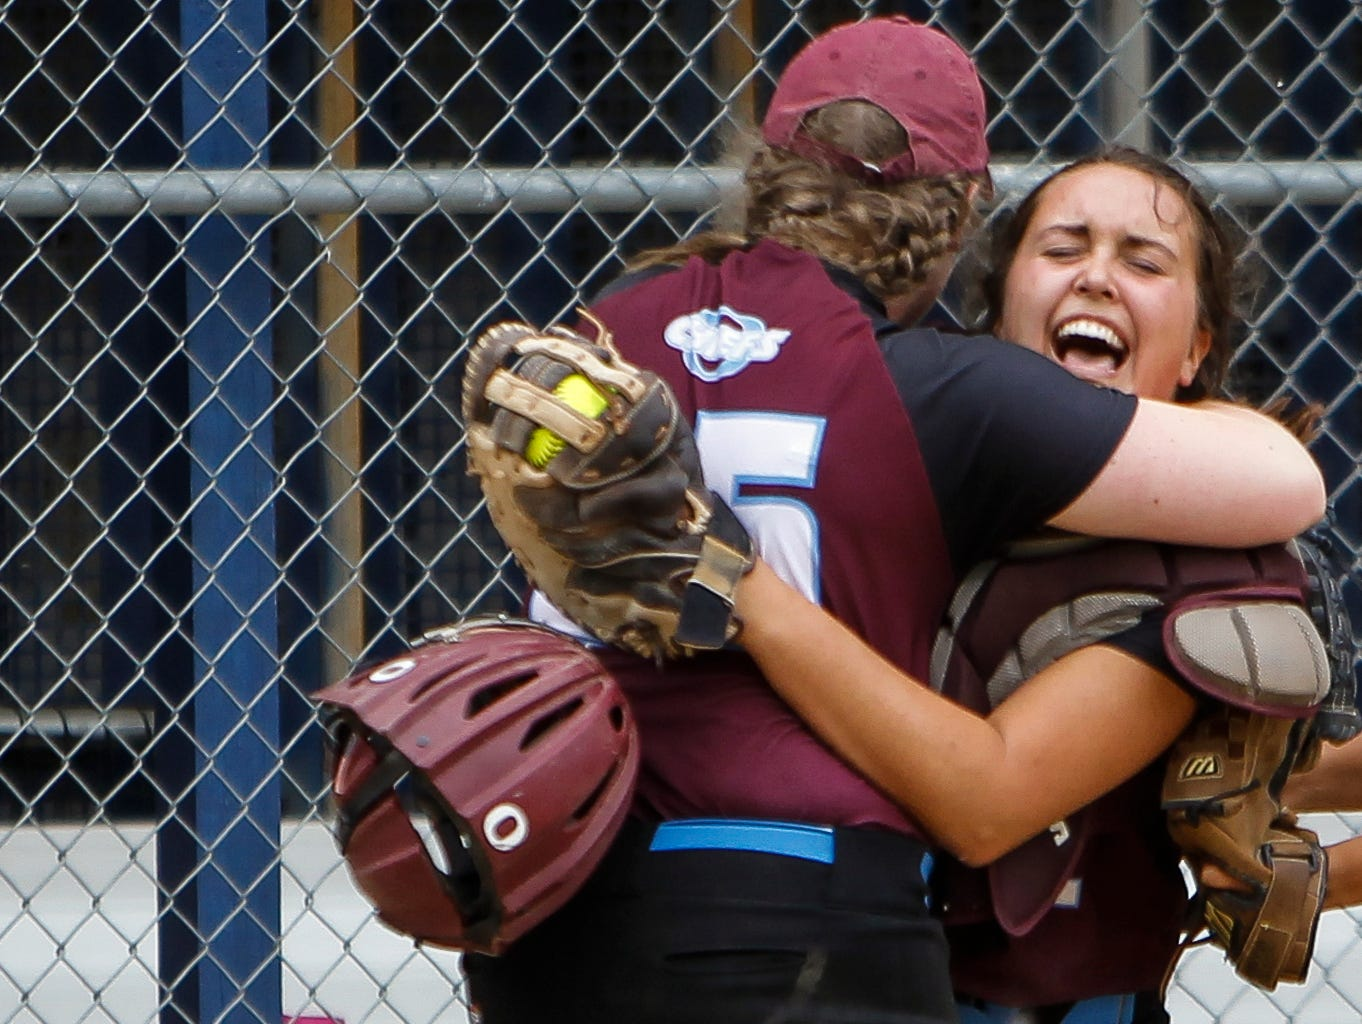 Okemos pitcher Sally Patterson and catcher Kate Buckland hug after the Chiefs beat St. Johns 3-1 to win the Division 1 softball final in East Lansing.